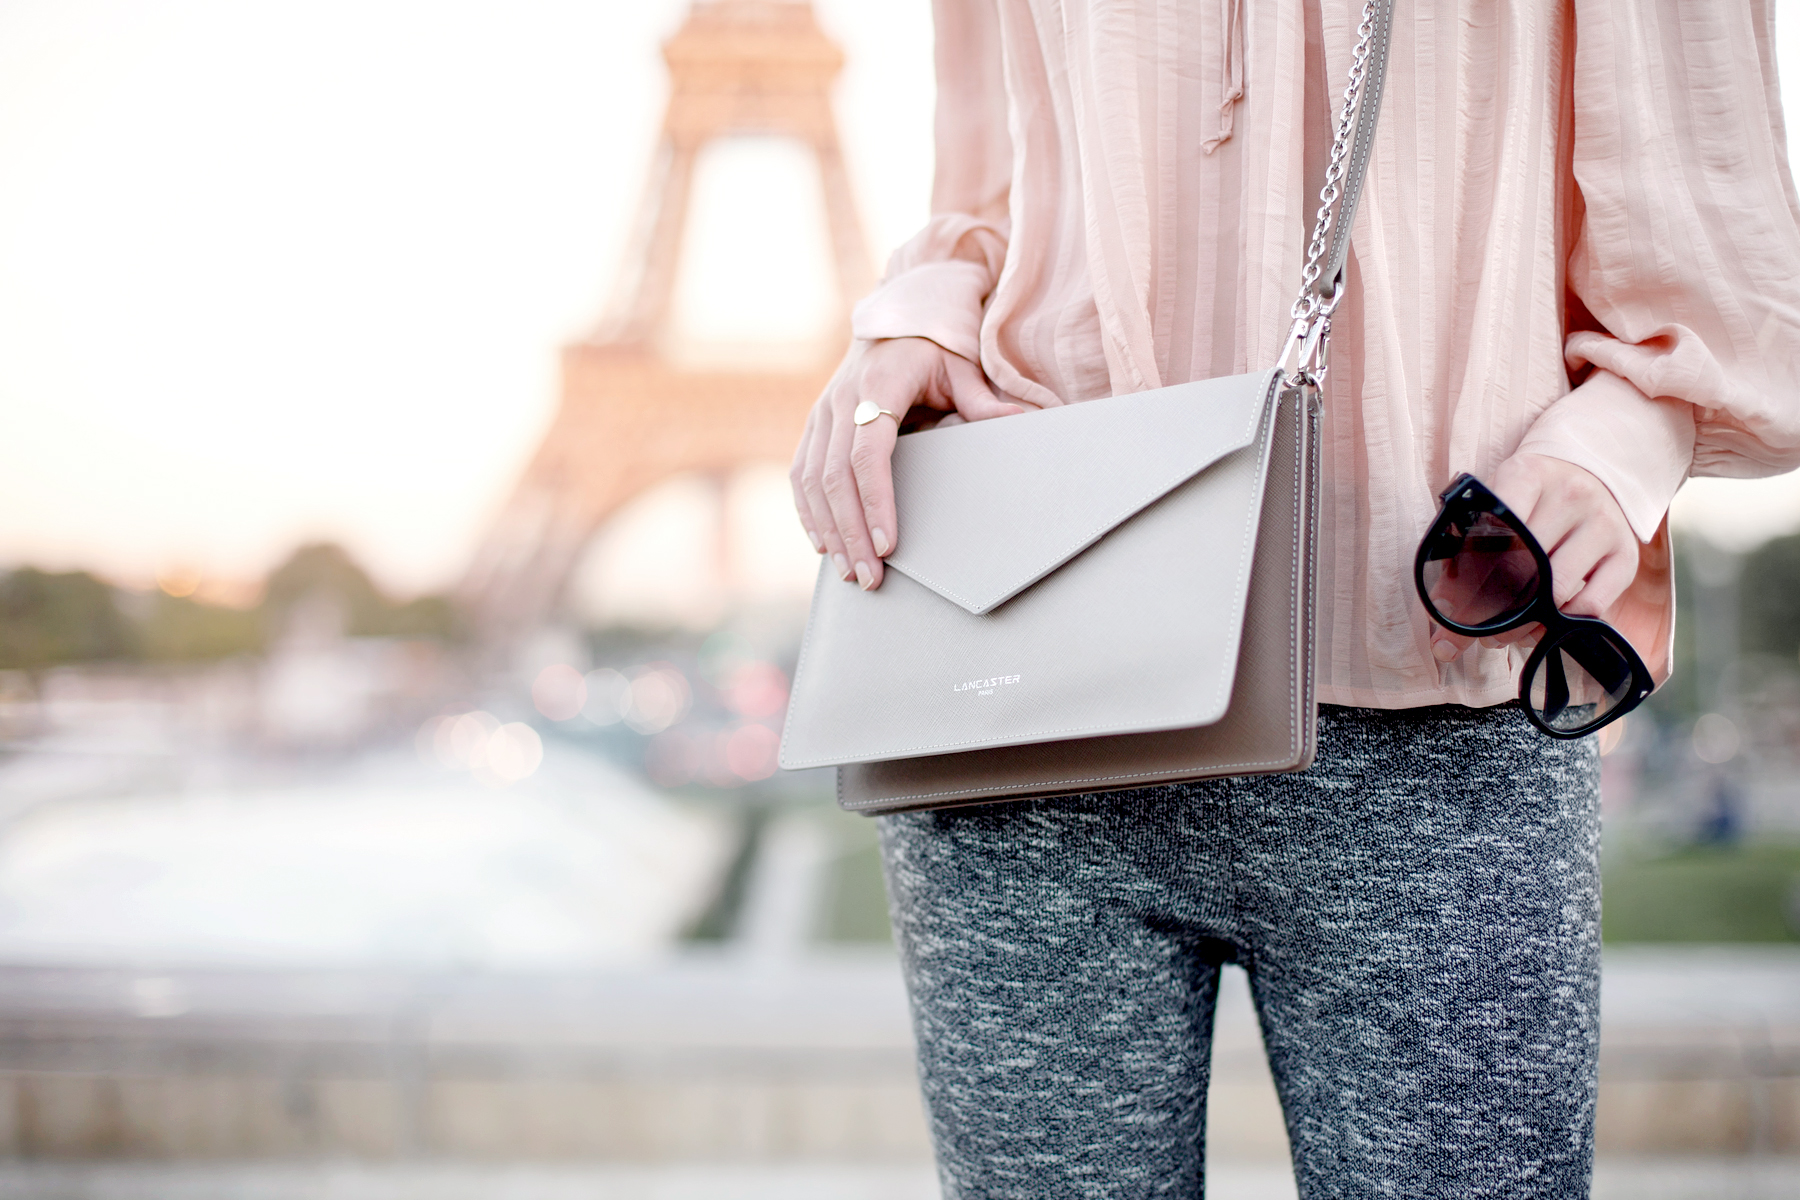 tour eiffel paris pfw fashionweek lancaster paris element bag peach bright outfit ootd look lookbook travel travelblogger inspiration autumn france french fashion blogger cats & dogs fashionblog ricarda schernus 1